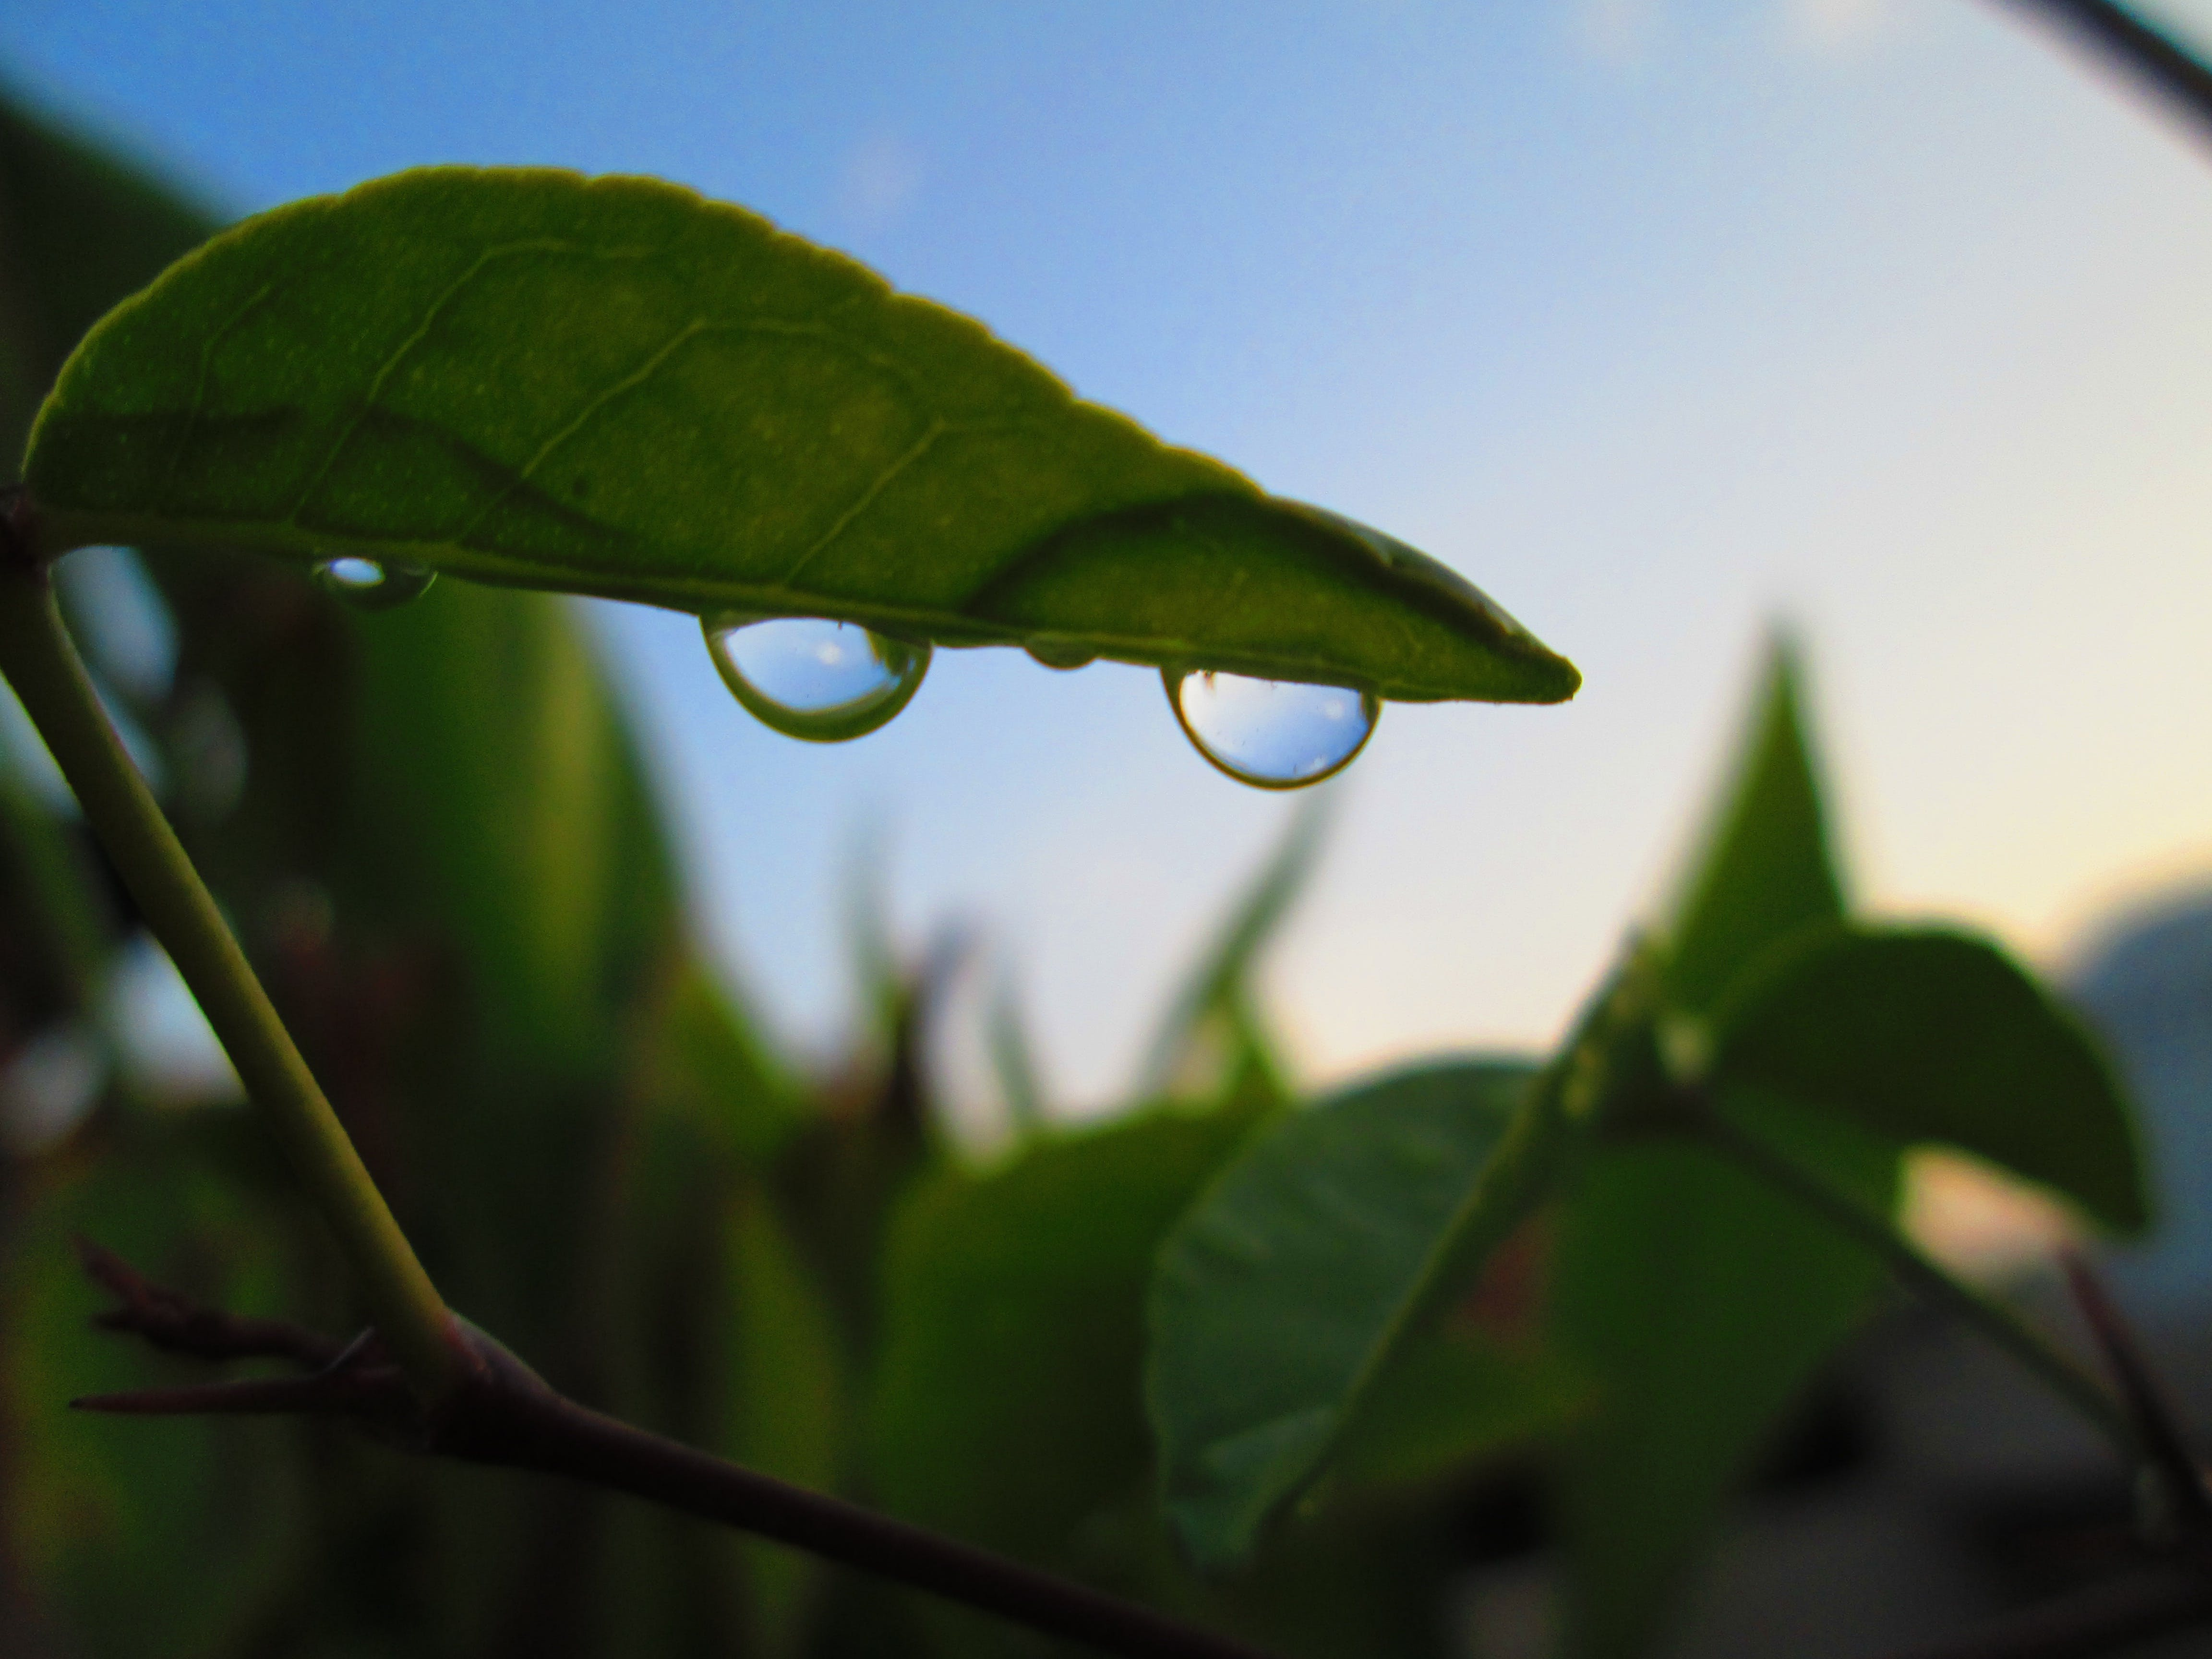 Free stock photo of green, water droplet